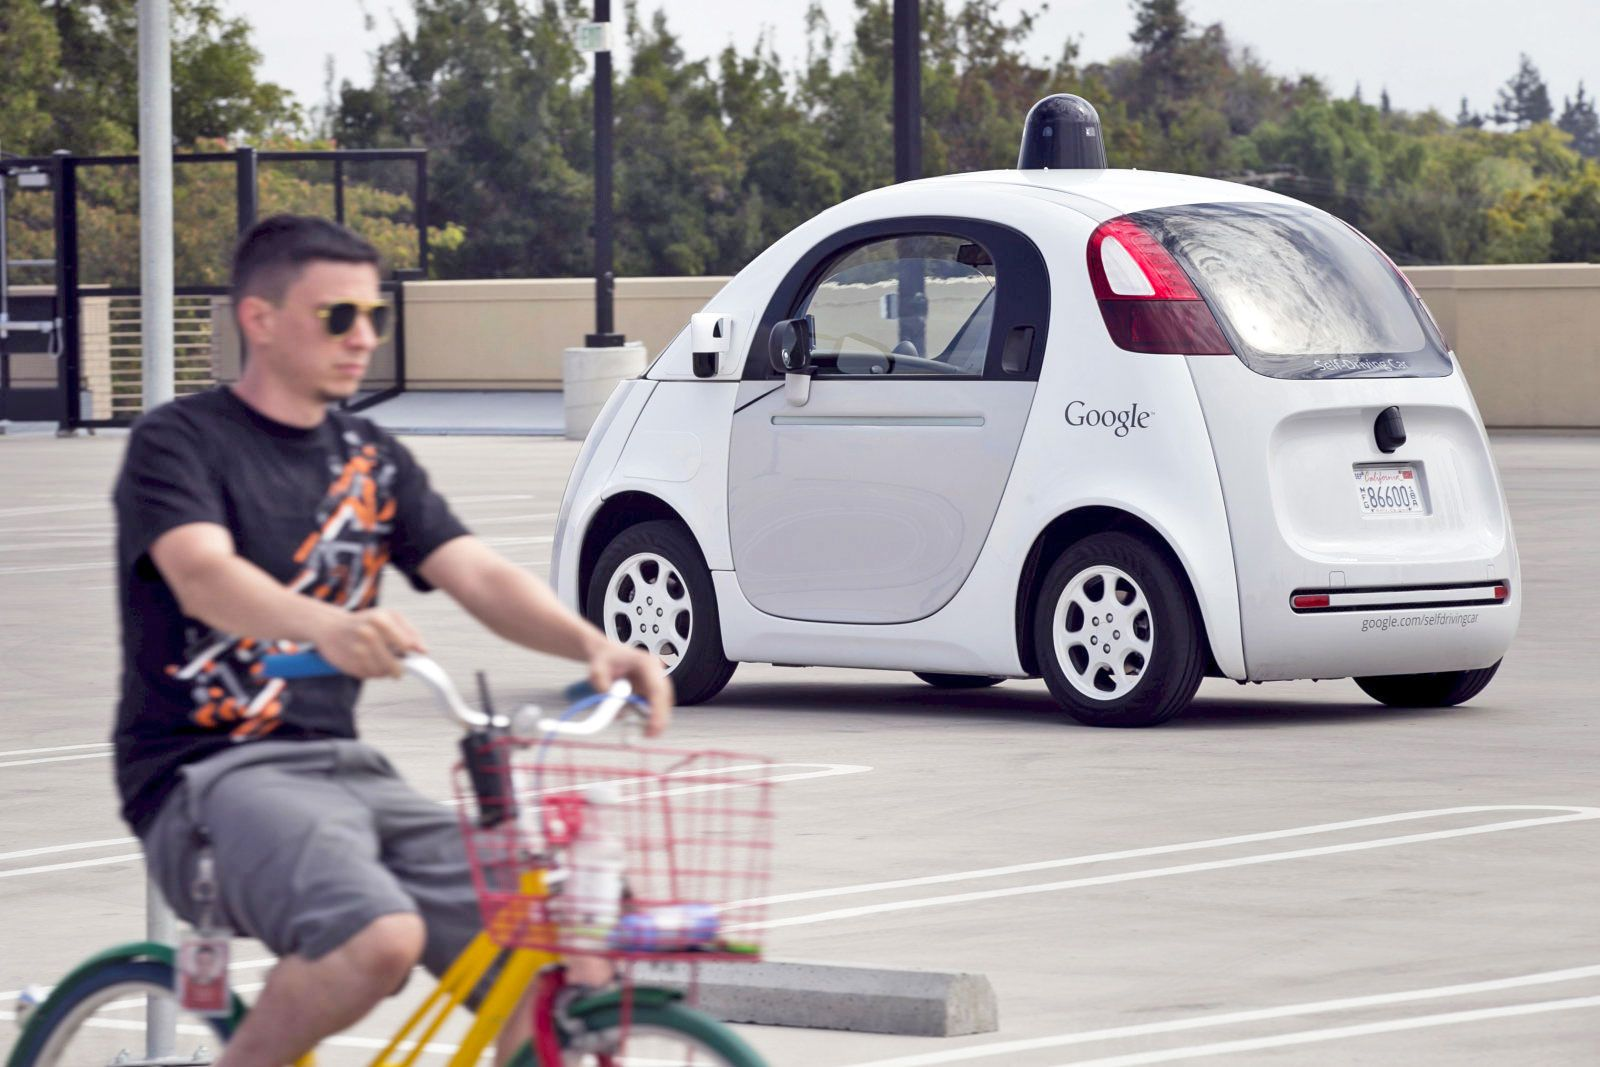 Google's selfdriving cars can read cyclists' hand signals